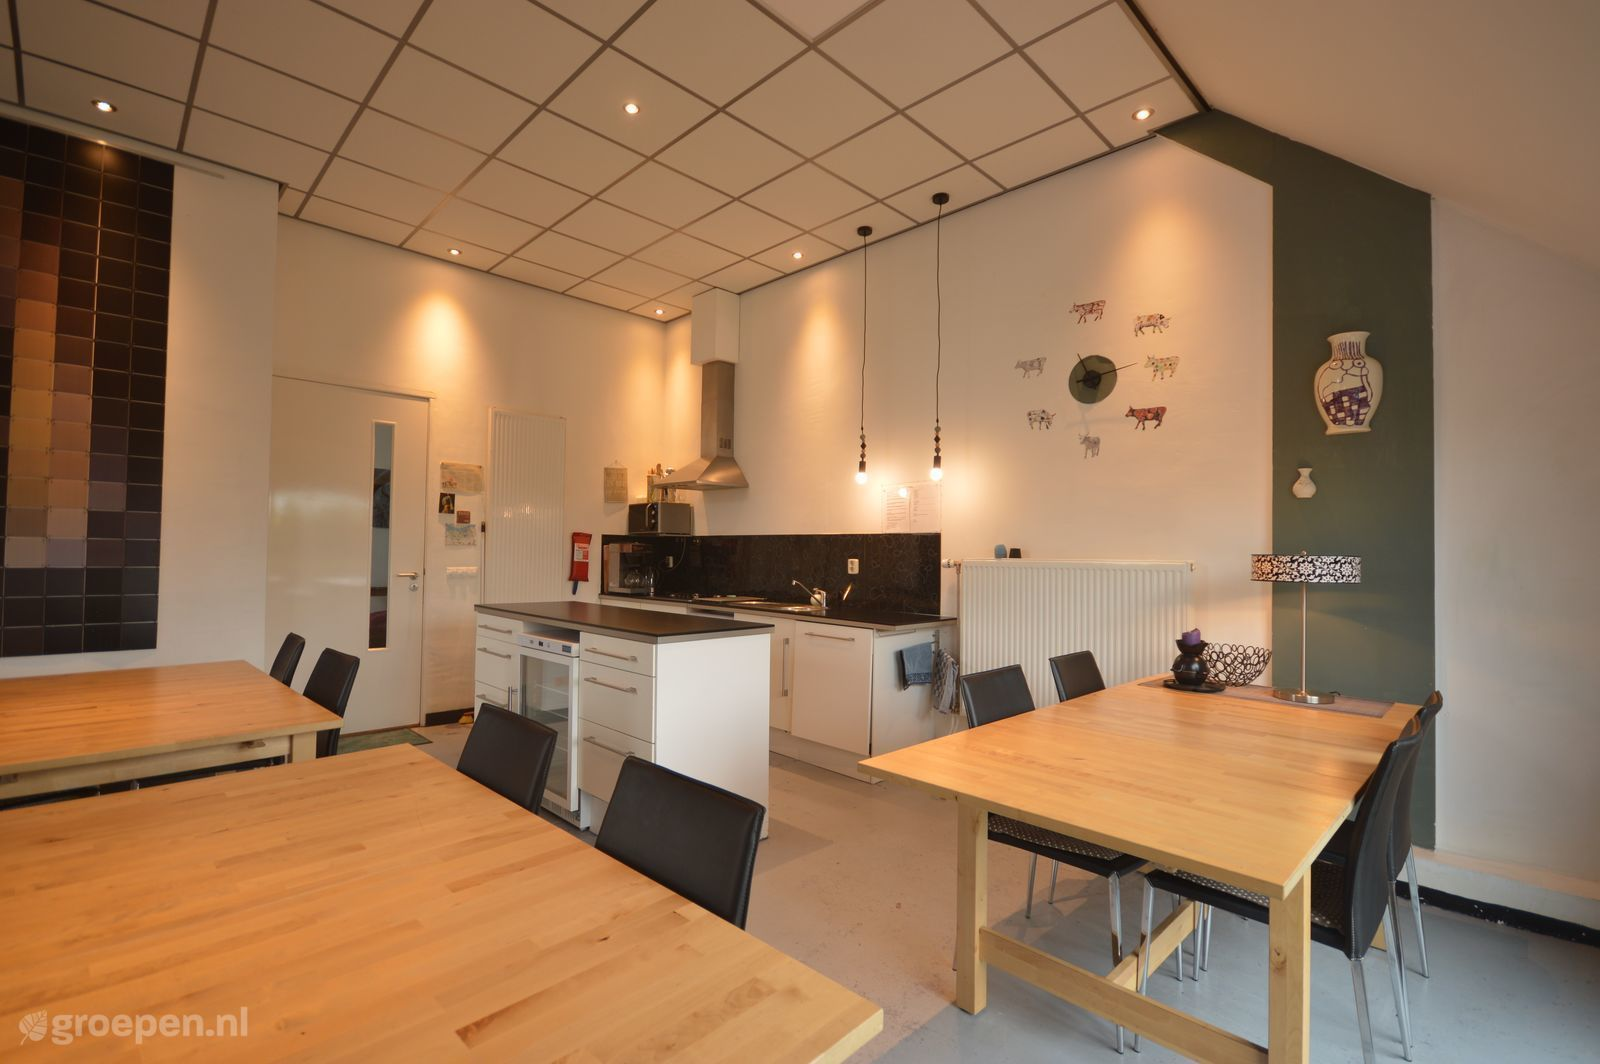 Group accommodation Zevenbergen